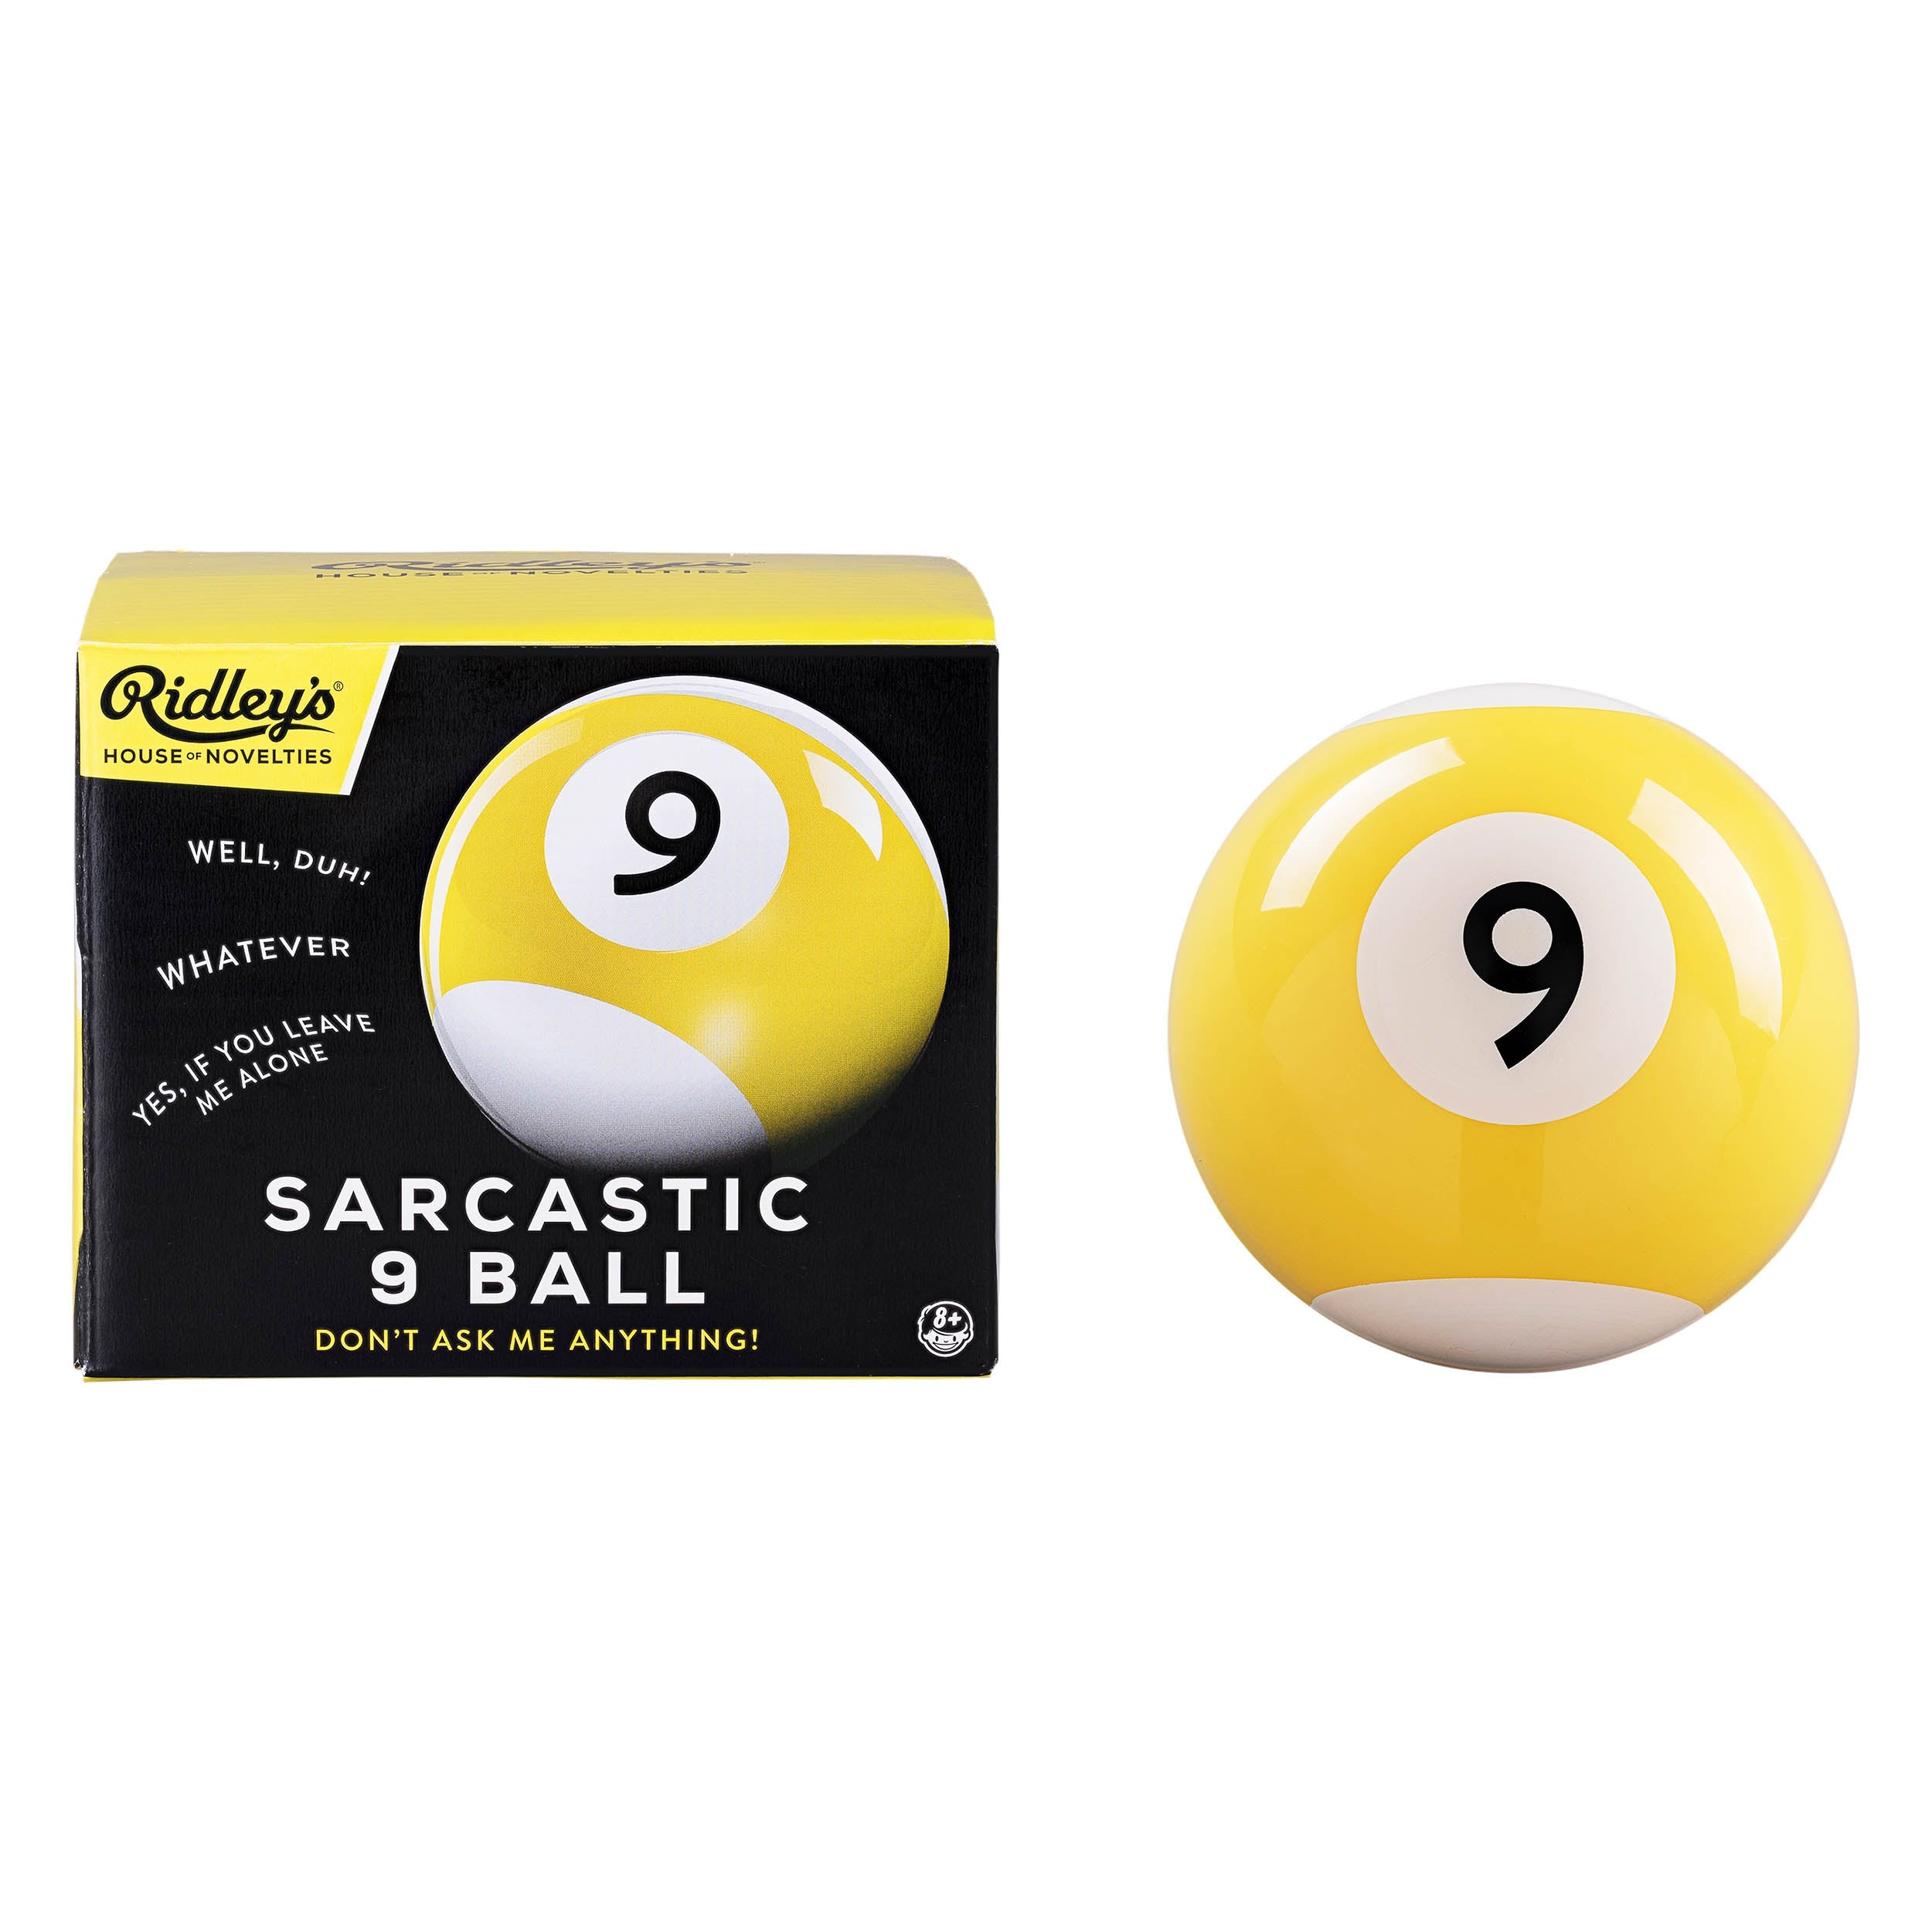 Sarcastic 9 Ball